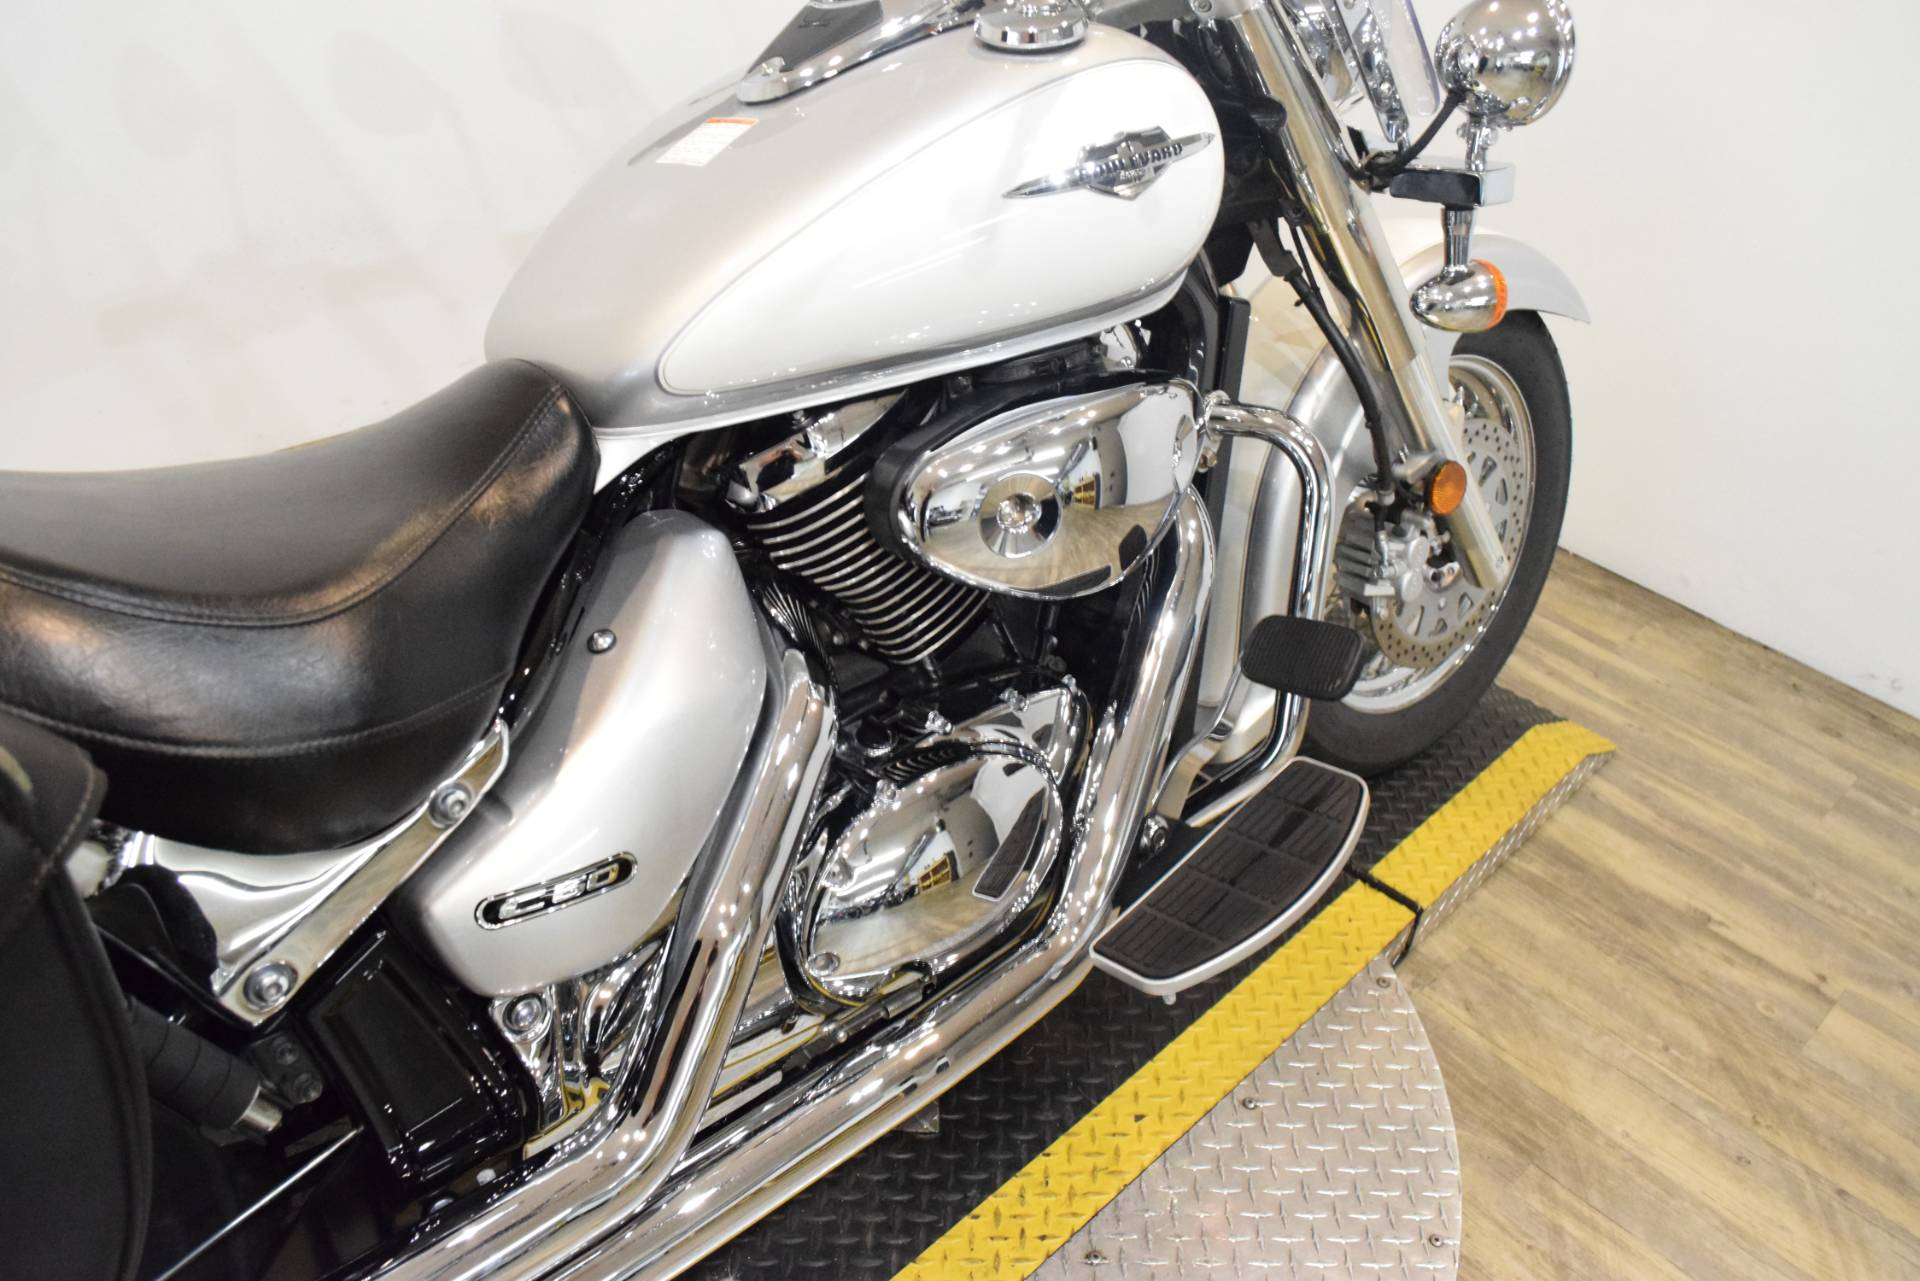 2007 Suzuki Boulevard C50 in Wauconda, Illinois